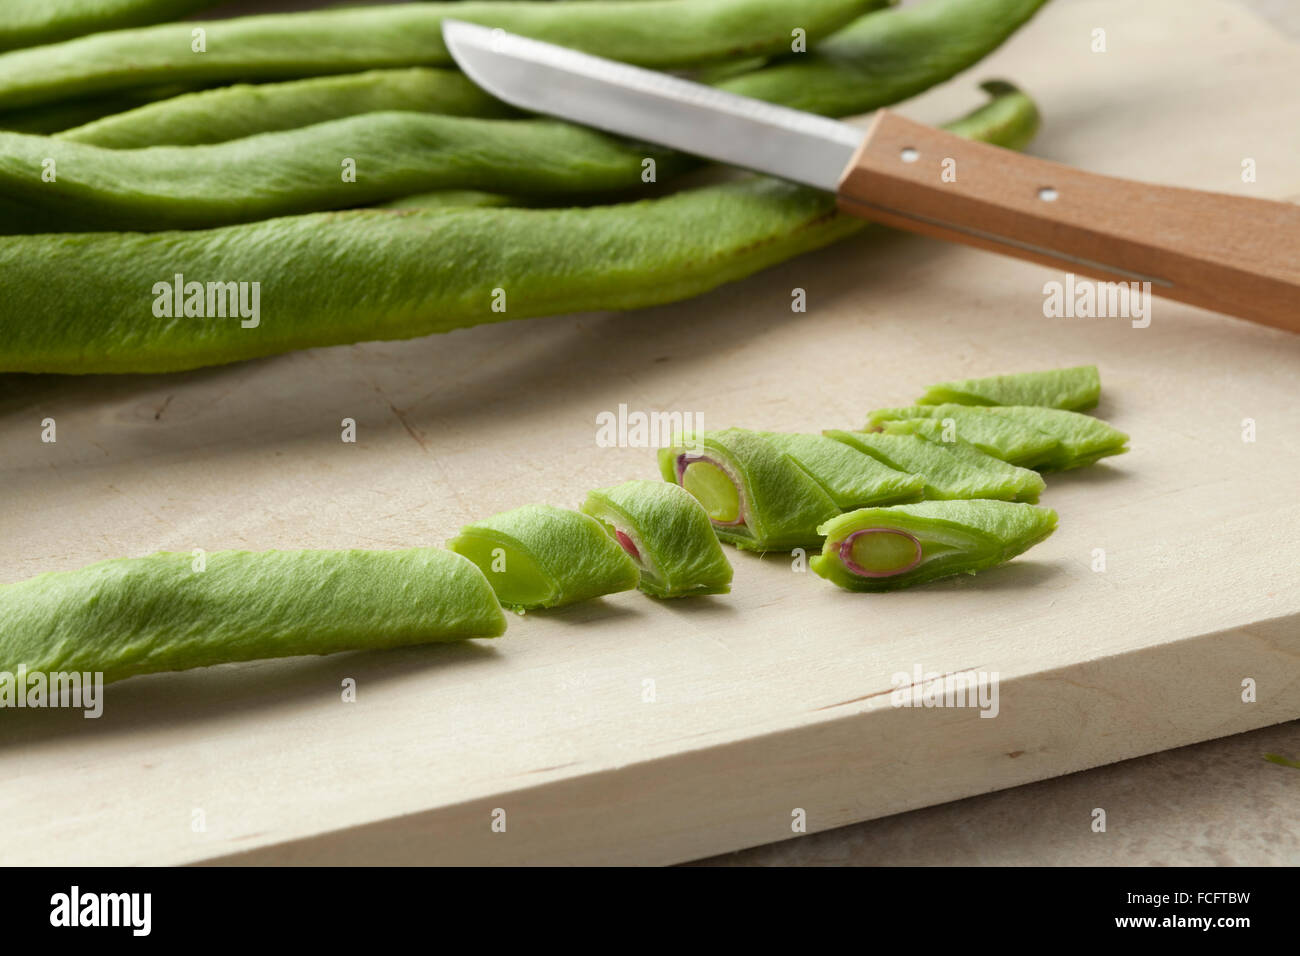 Fresh cut runner beans on a cutting board - Stock Image